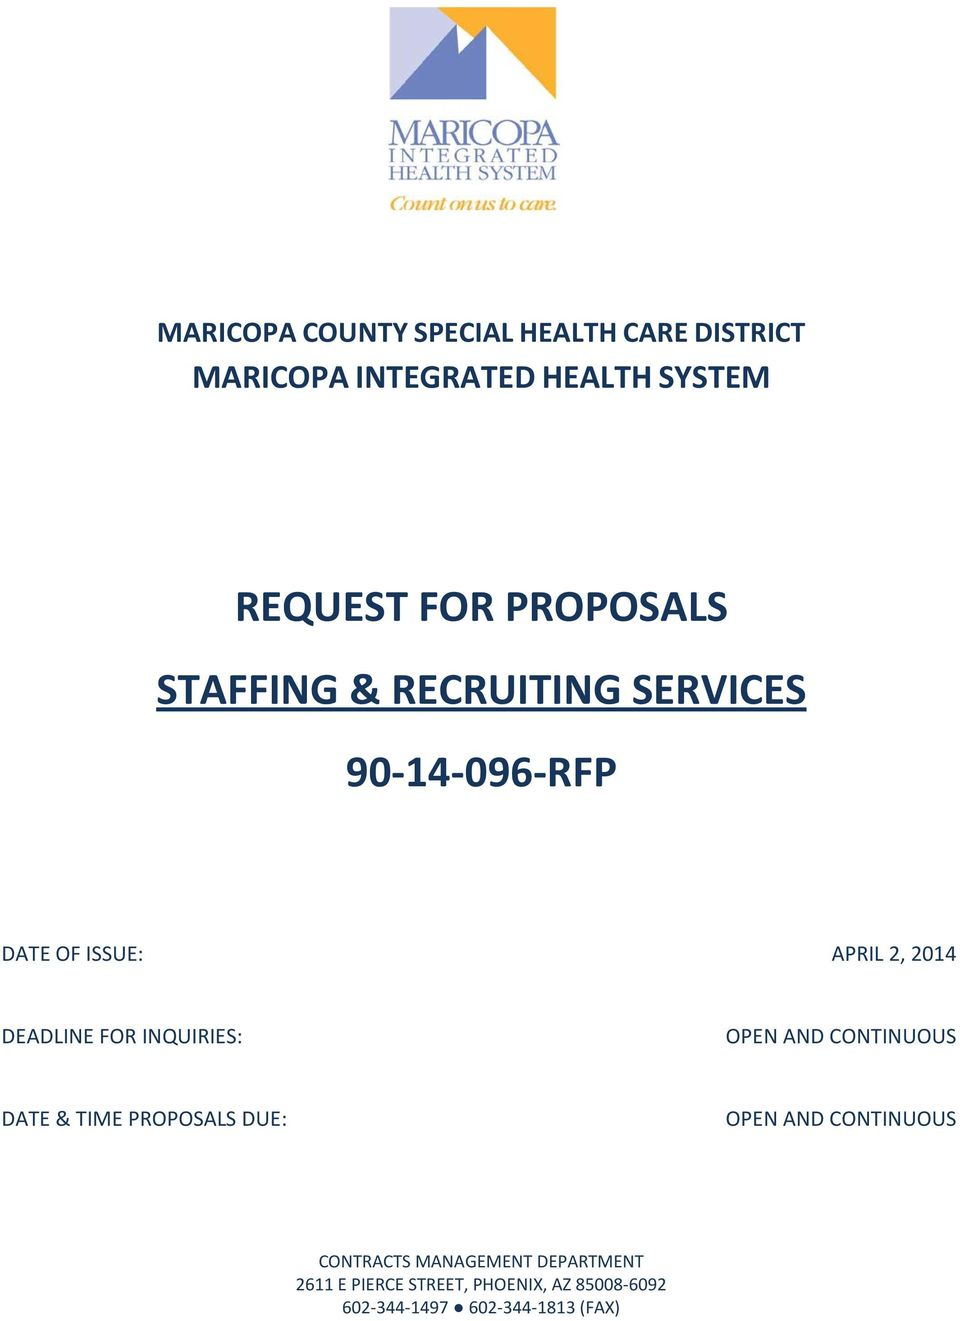 REQUEST FOR PROPOSALS STAFFING & RECRUITING SERVICES RFP - PDF